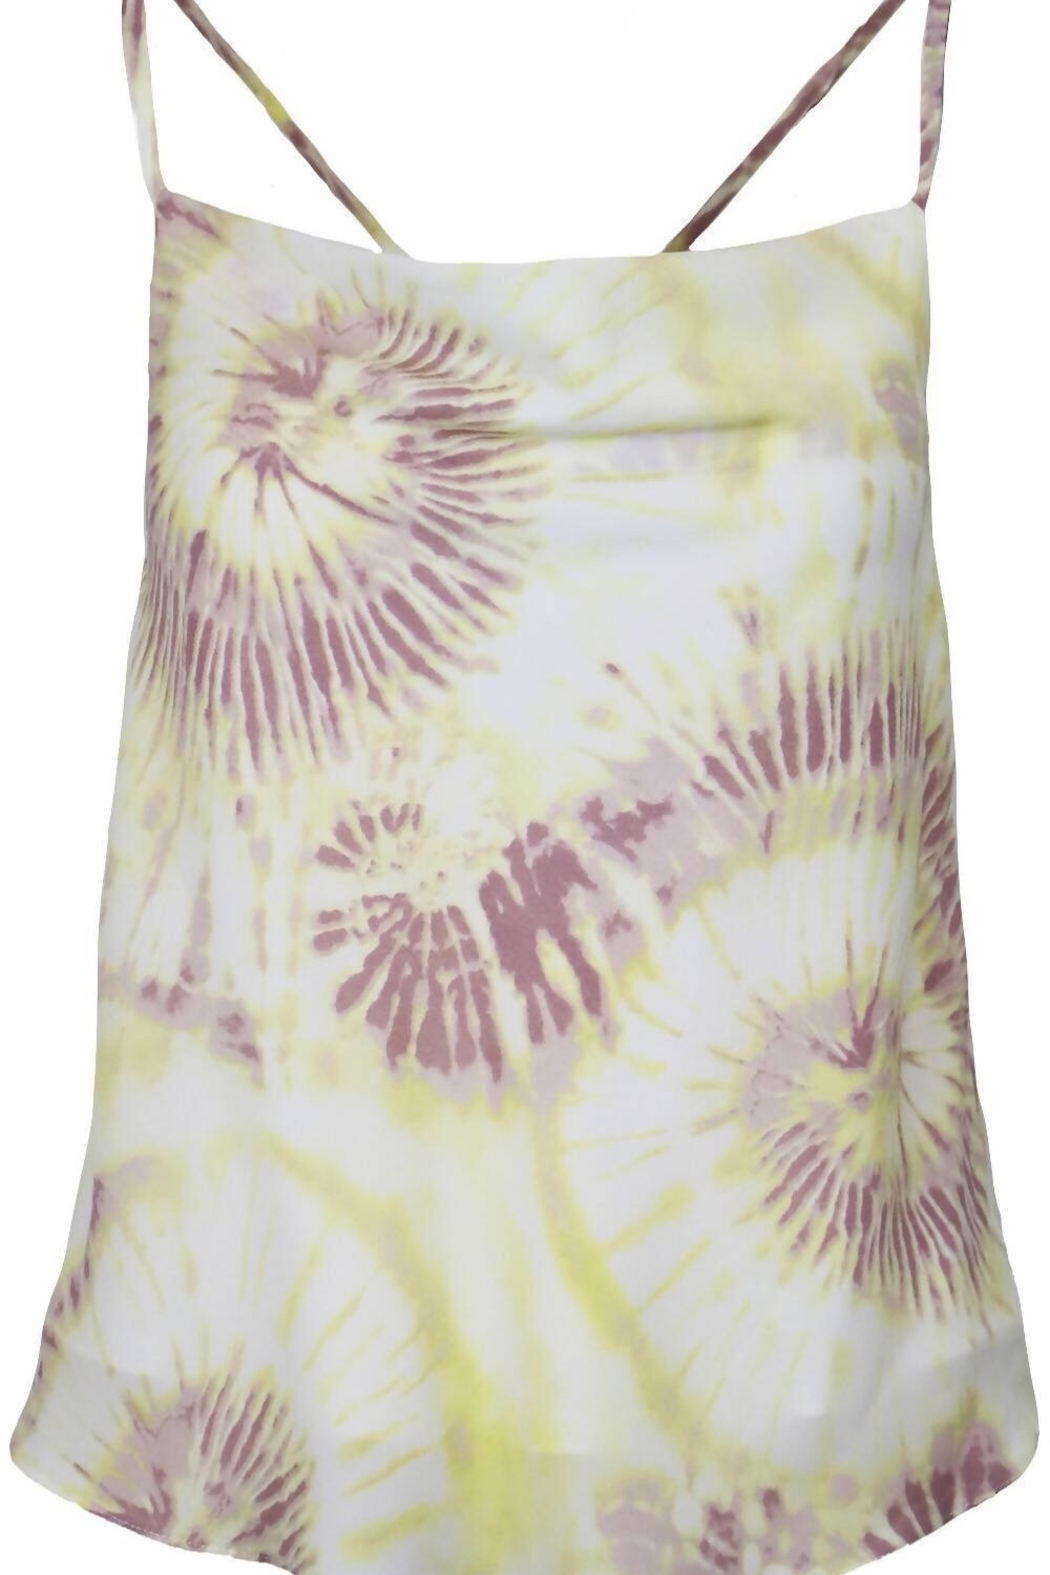 Lucy Paris  Yellow Tie Dye Cami - Side Cropped Image